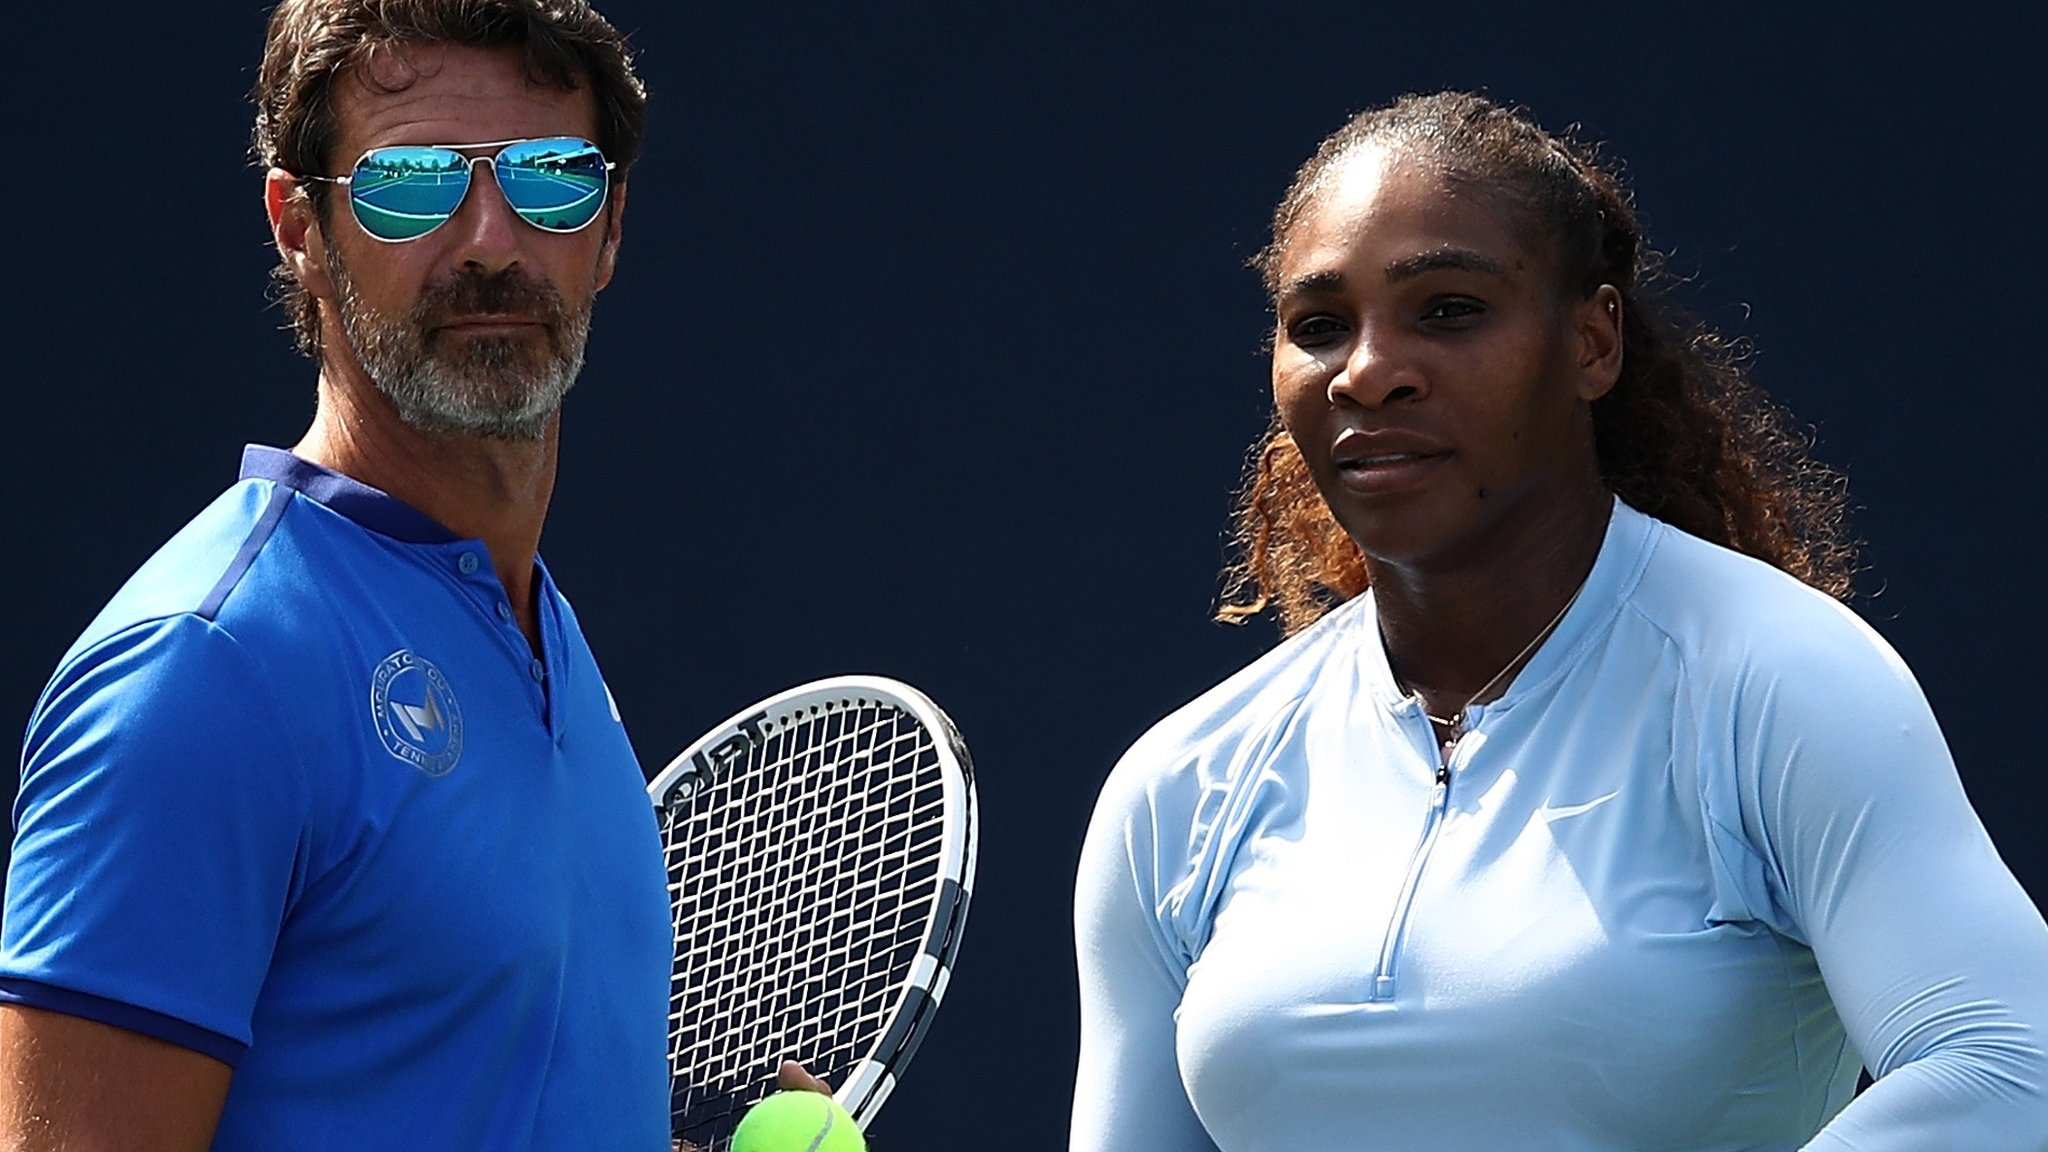 Serena Williams' coach says allowing on-court coaching would improve tennis